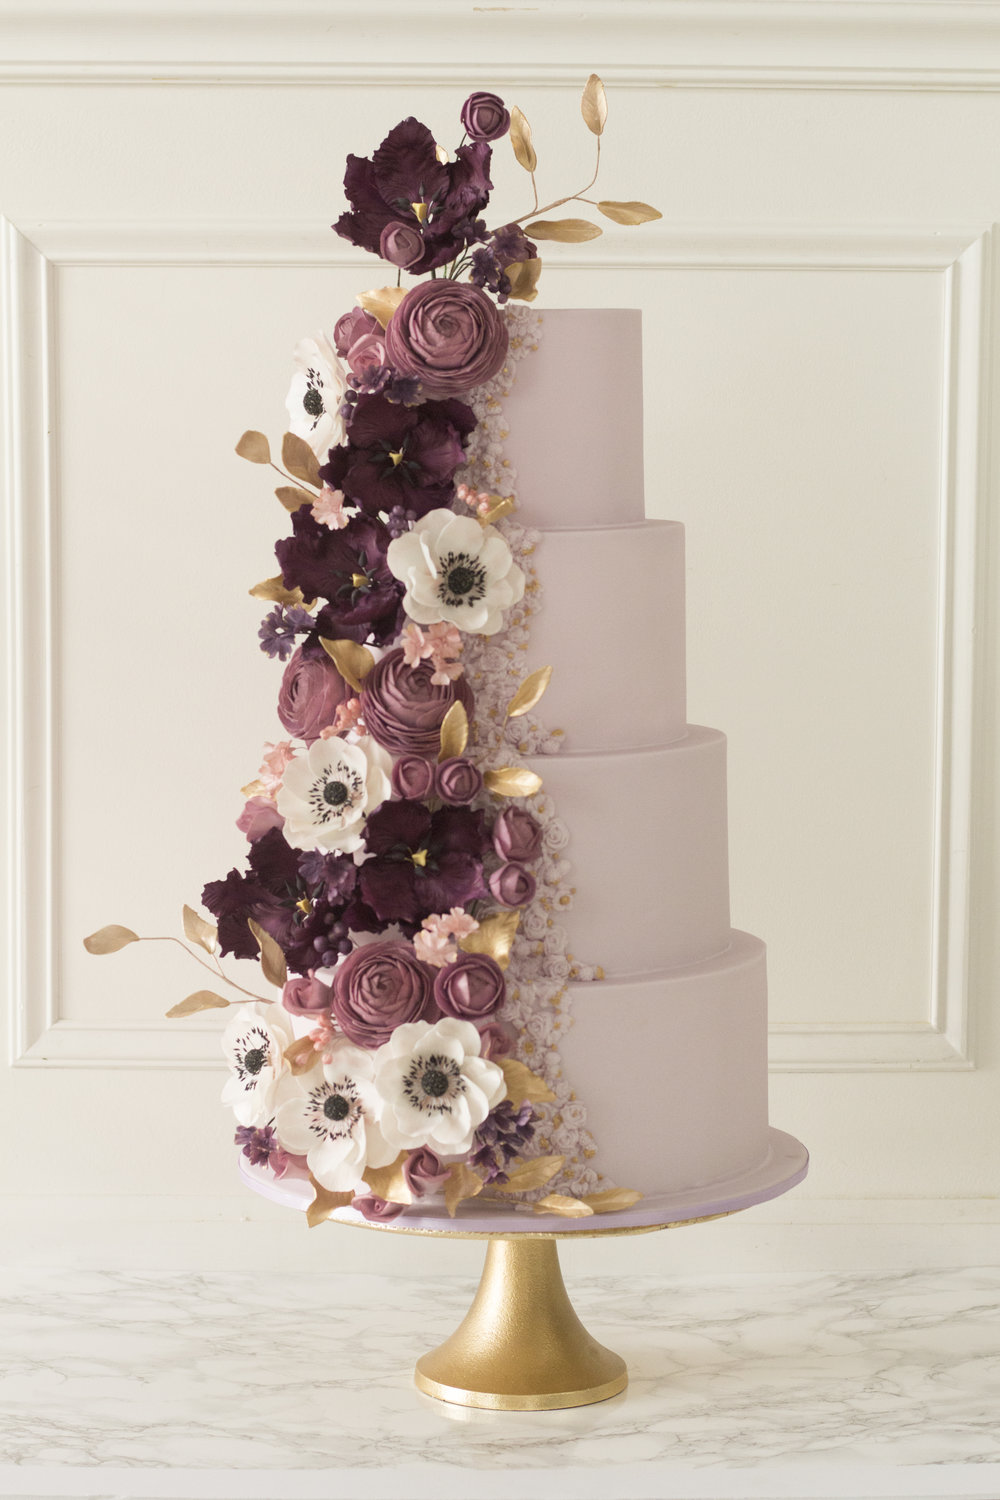 Floral Couture Cake .jpg